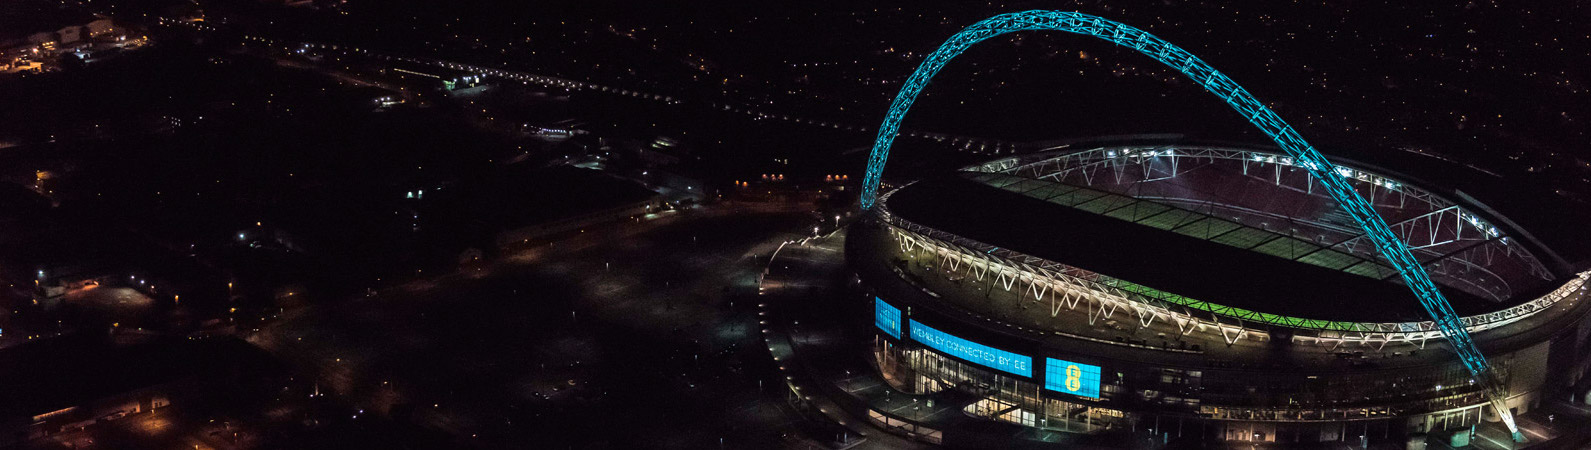 Wembley Stadium tickets and events with Hospitality options